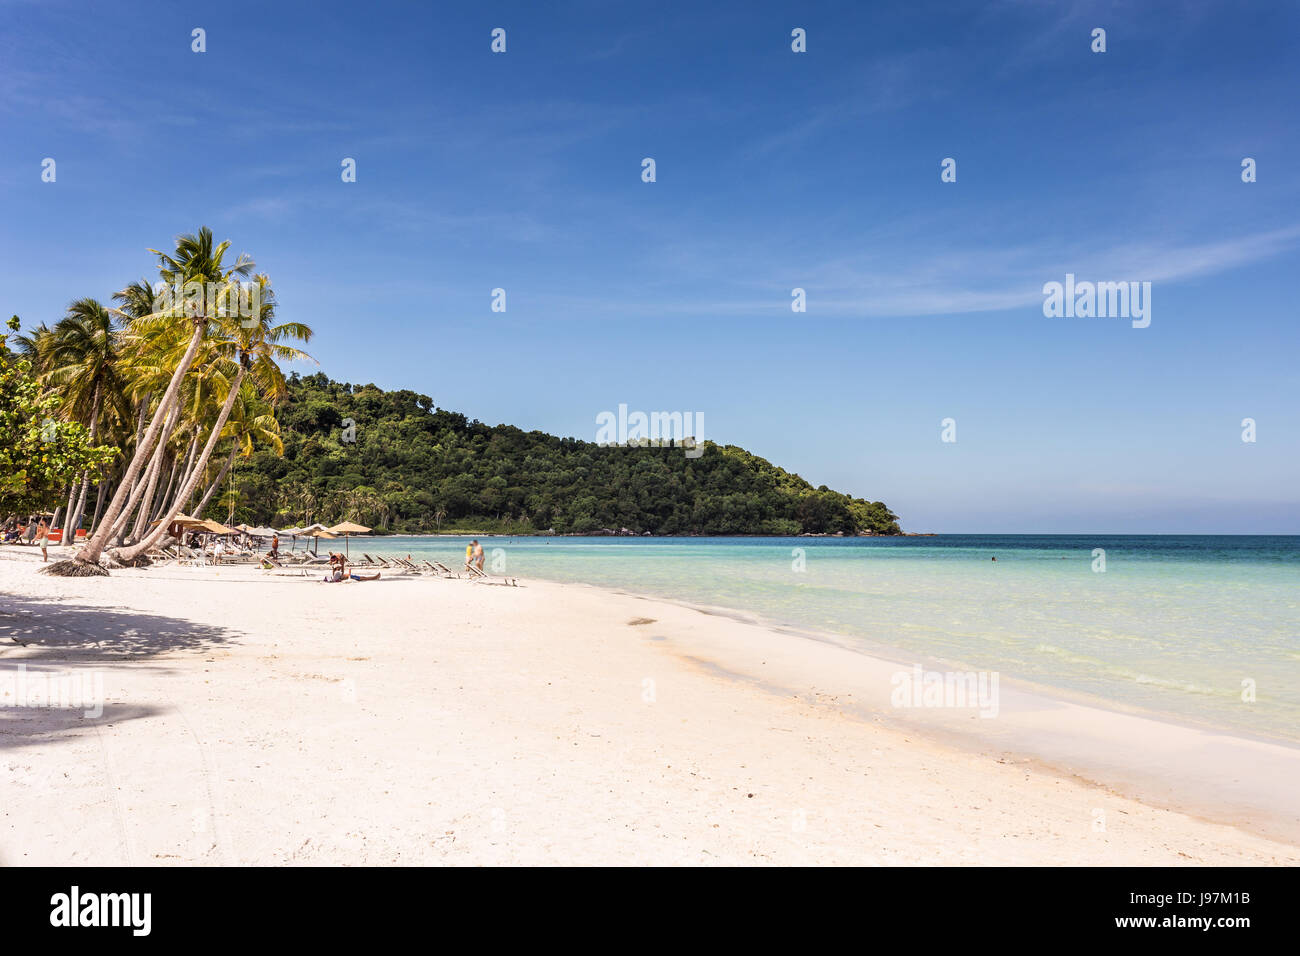 Stunning white sand beach name Bai Sao beach in the Phu Quoc island in south Vietnam in the Gulf of Thailand. - Stock Image